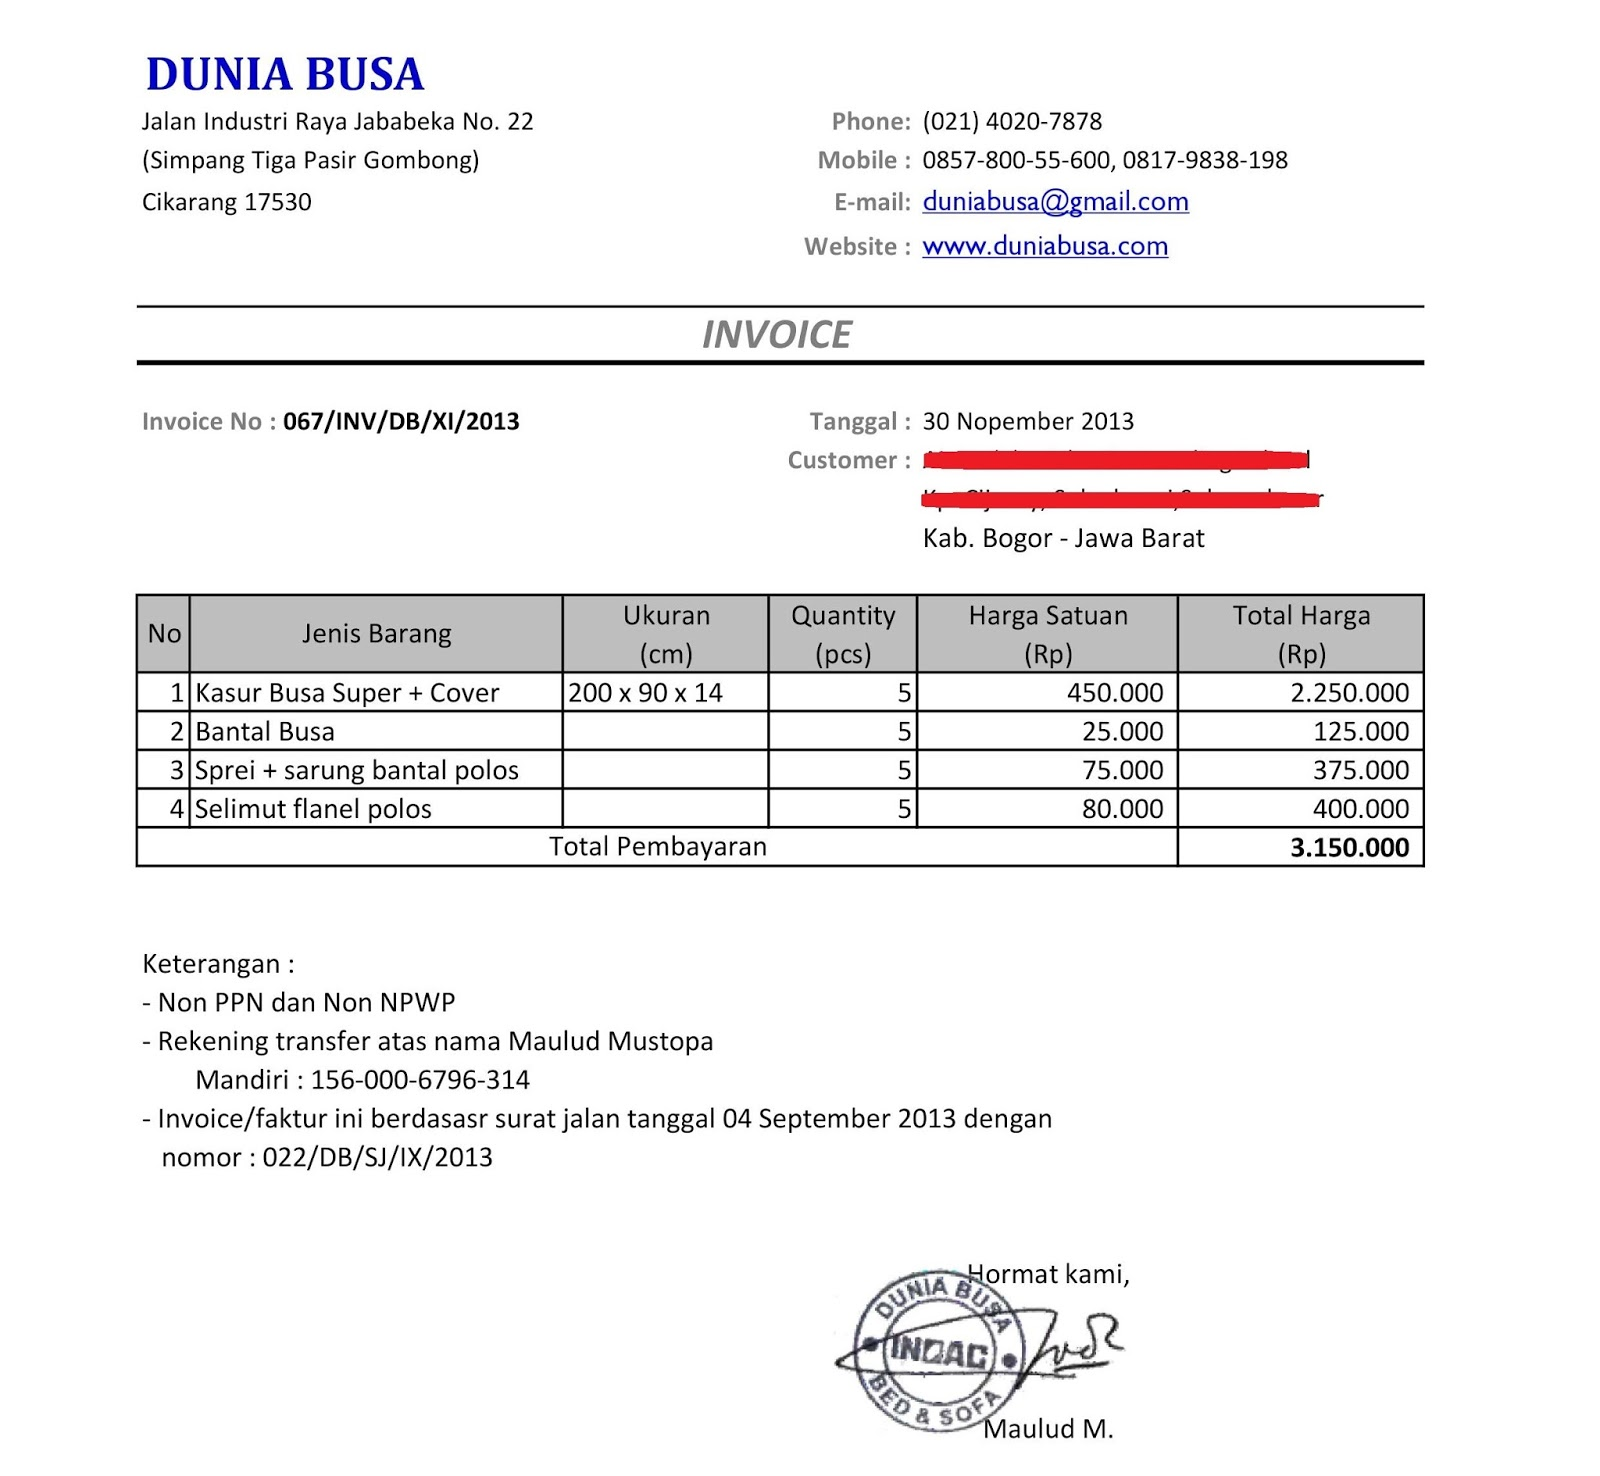 Usdgus  Outstanding Free Invoice Online  Create Invoice Online  Invoice Template  With Fetching Contoh Format Invoice Atau Surat Tagihan  Brankas Arsip  Free Invoice Online With Breathtaking Star Receipt Printer Tsp Also Acknowledgement Letter Of Receipt In Addition Cash Receipts Format And Receipt Book Template Word As Well As Accounting Cash Receipts Journal Additionally Meru Cabs Receipt From Sklepco With Usdgus  Fetching Free Invoice Online  Create Invoice Online  Invoice Template  With Breathtaking Contoh Format Invoice Atau Surat Tagihan  Brankas Arsip  Free Invoice Online And Outstanding Star Receipt Printer Tsp Also Acknowledgement Letter Of Receipt In Addition Cash Receipts Format From Sklepco